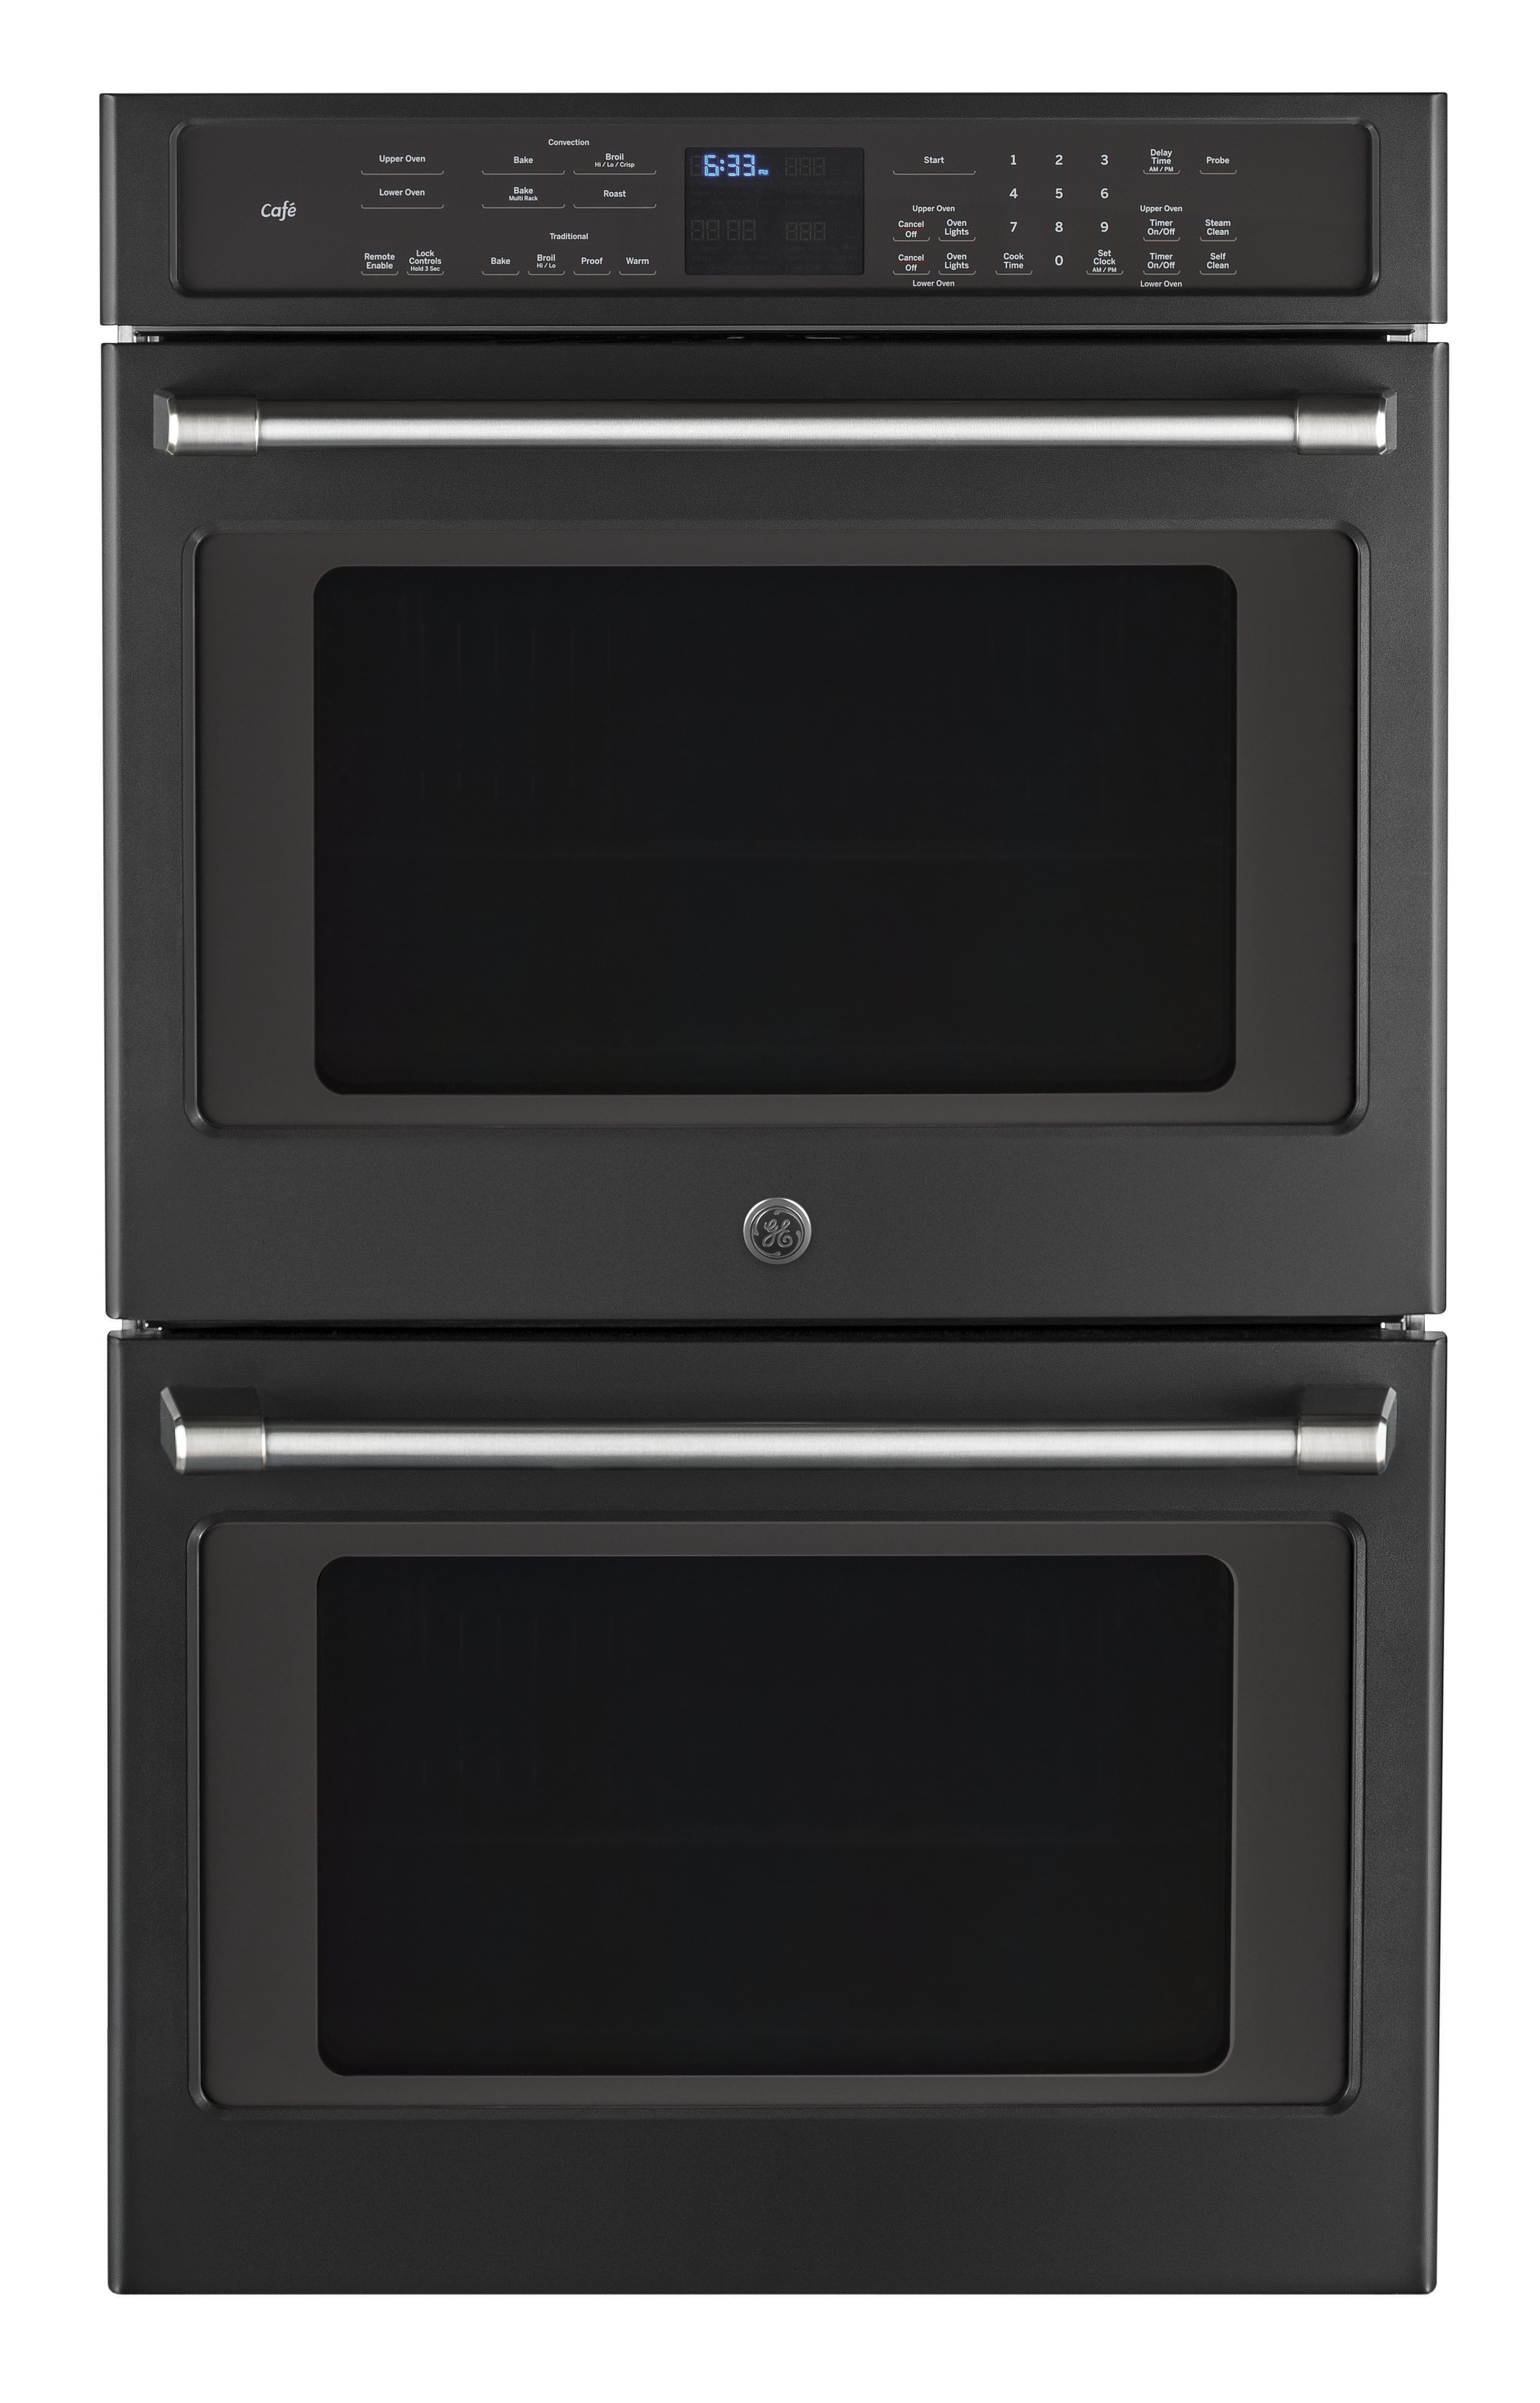 engineered for durability, designed for distinction: ge appliances